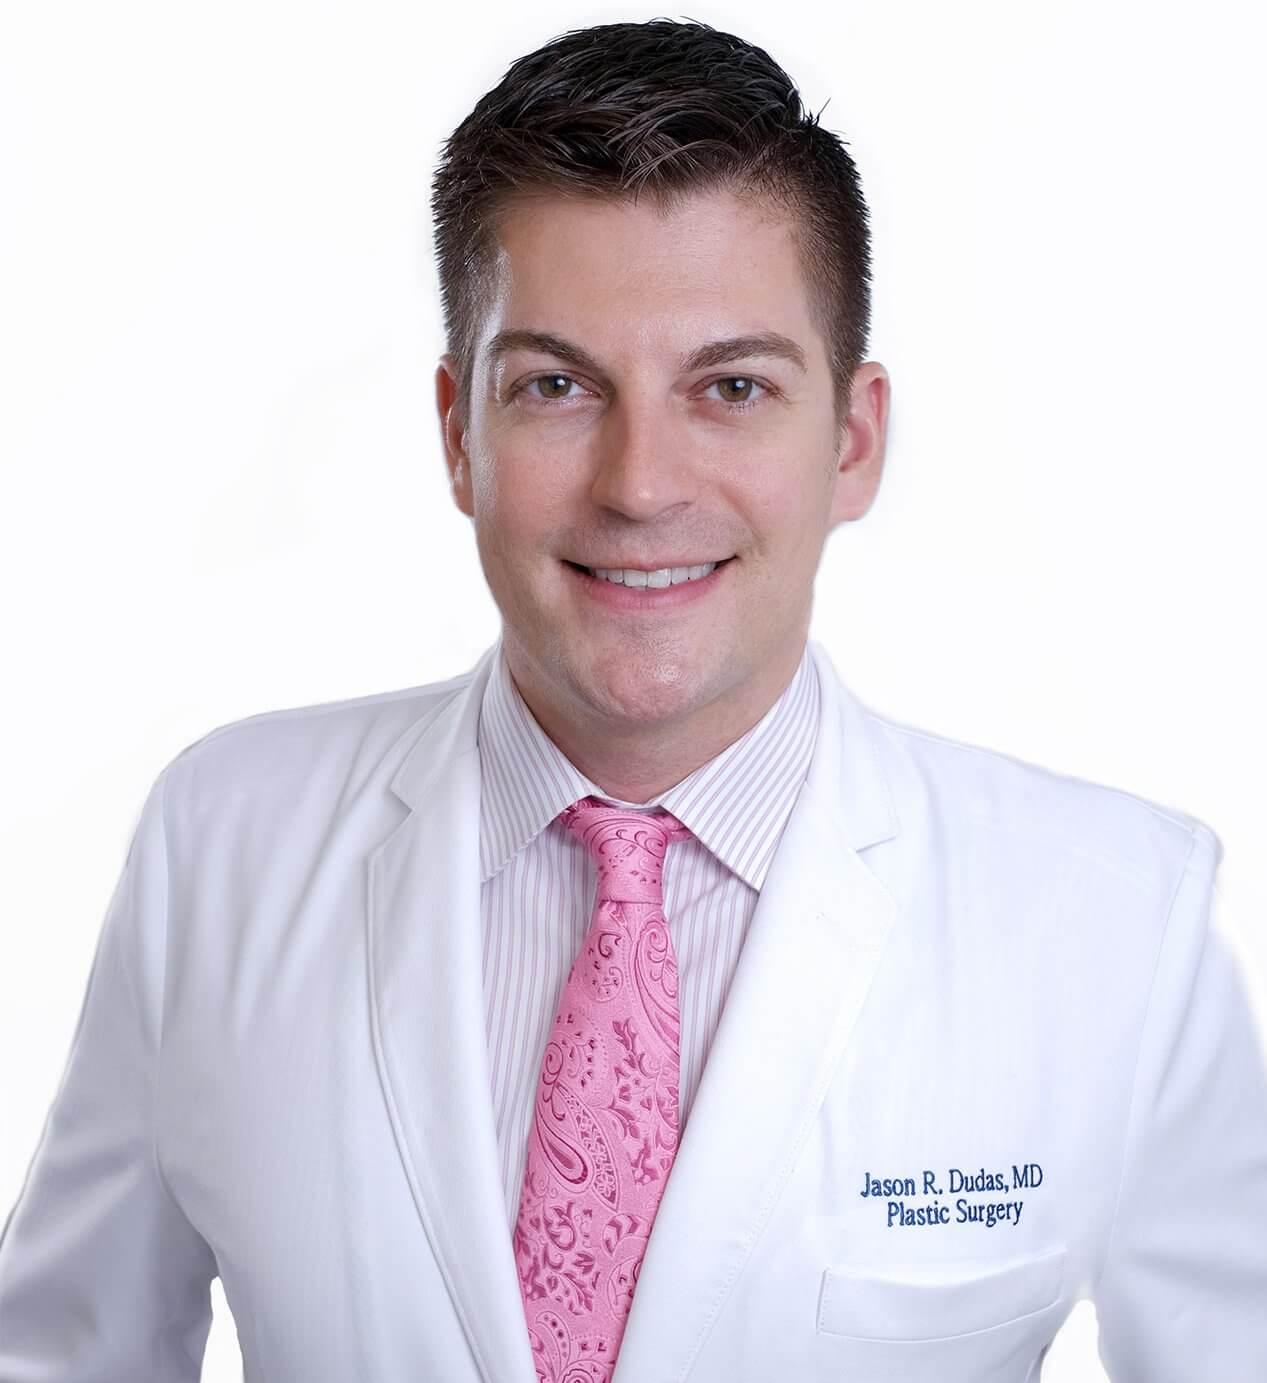 Top San Francisco Plastic Surgeon Dr. Jason Dudas